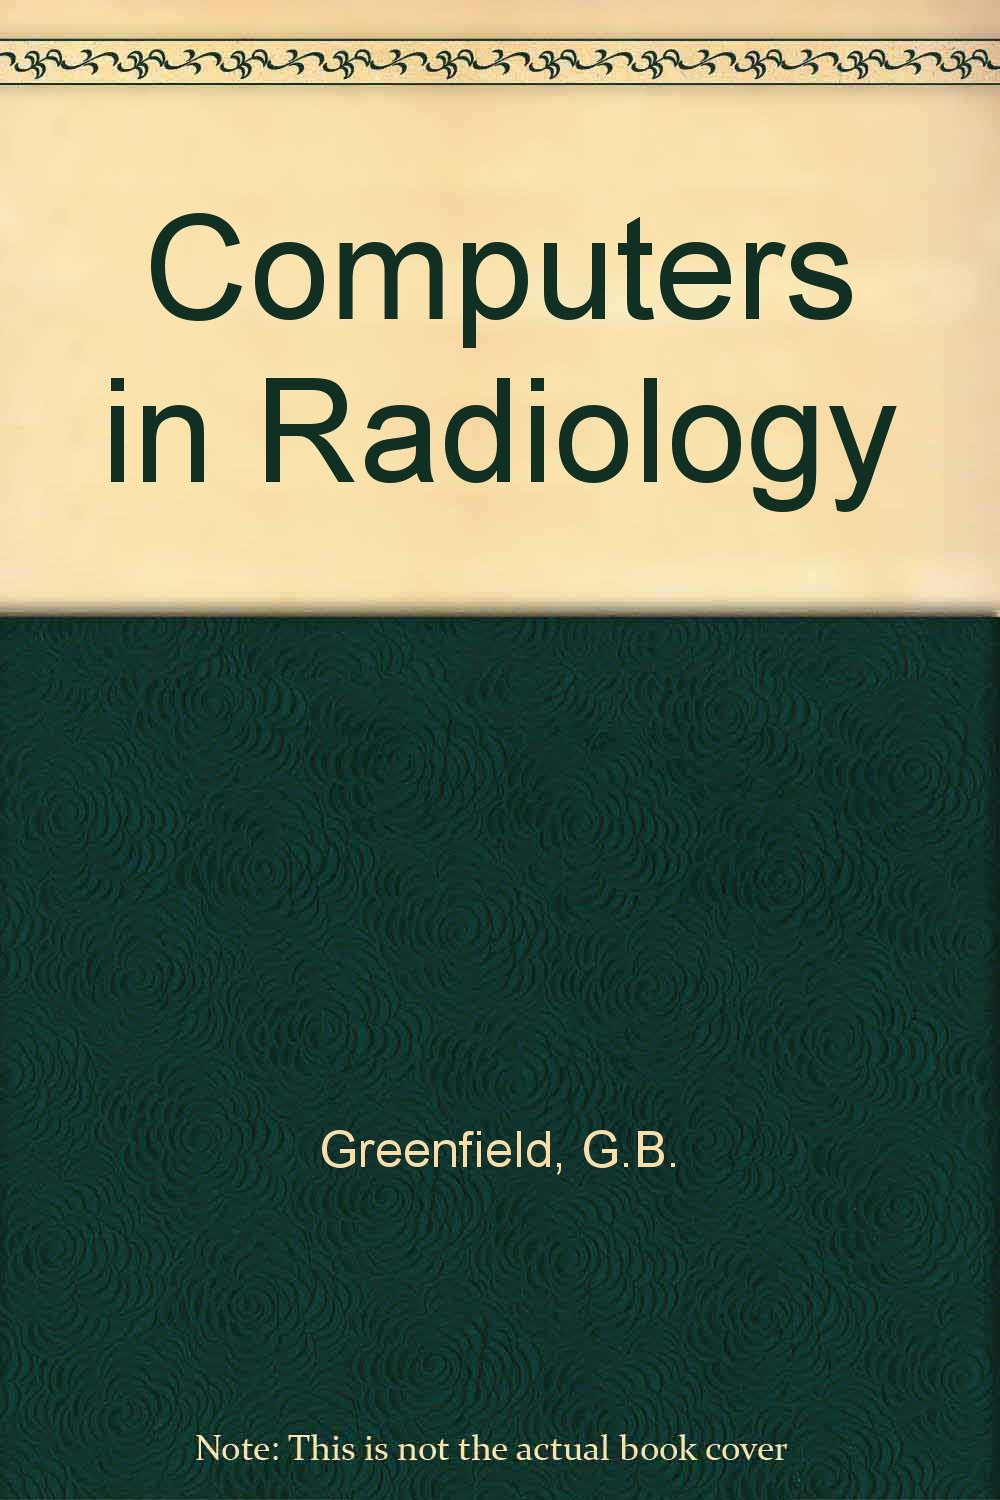 Computers in Radiology